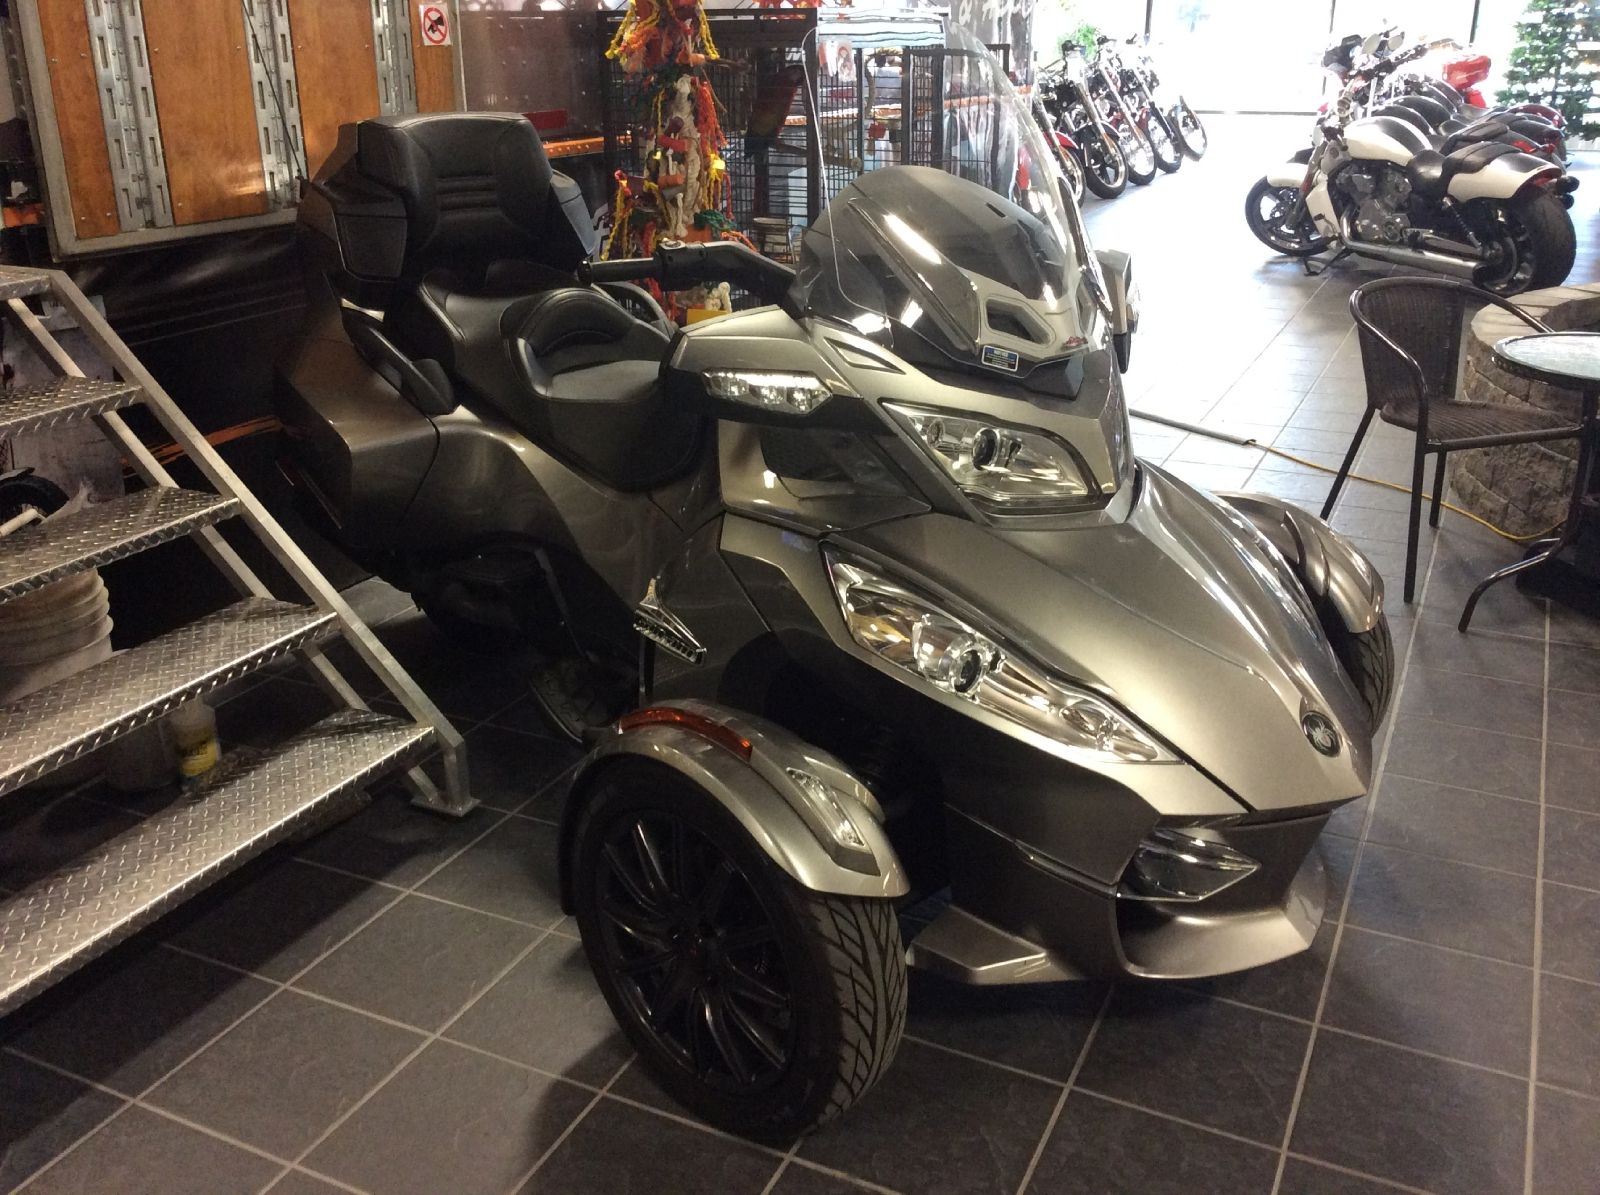 d 39 occasion 2011 can am spyder rt vendre st hyacinthe qc special car pinterest cars. Black Bedroom Furniture Sets. Home Design Ideas